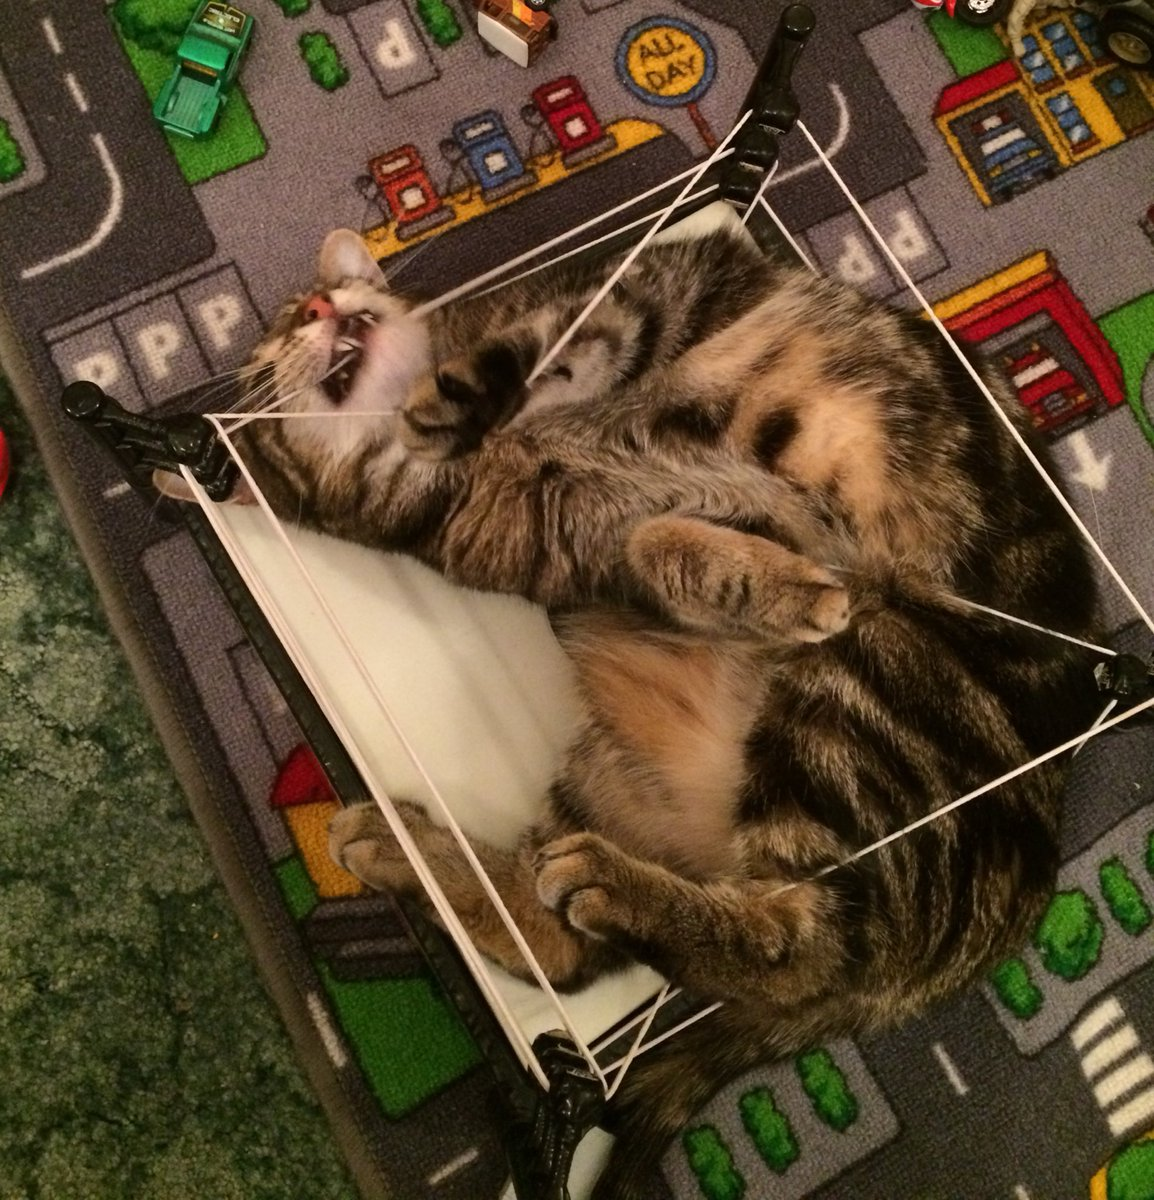 Guess who's not allowed to play in their human brothers wrestling ring anymore?  #cats #CatsOnTwitter #TabbyTroop<br>http://pic.twitter.com/rCYcffKzsM